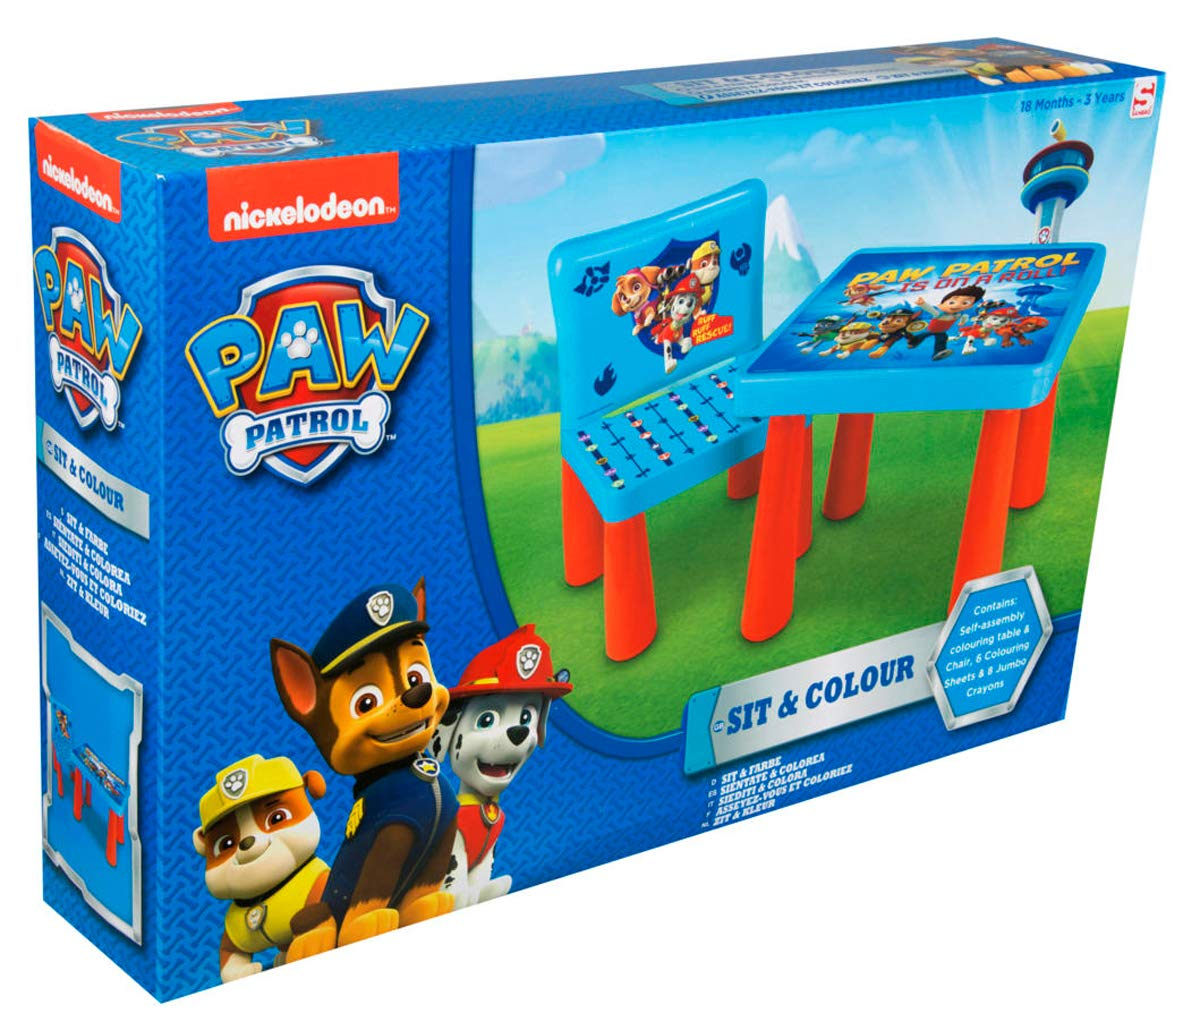 Paw Patrol Rubble Childrens Backpack With Creative Colouring Art Accessories Toy